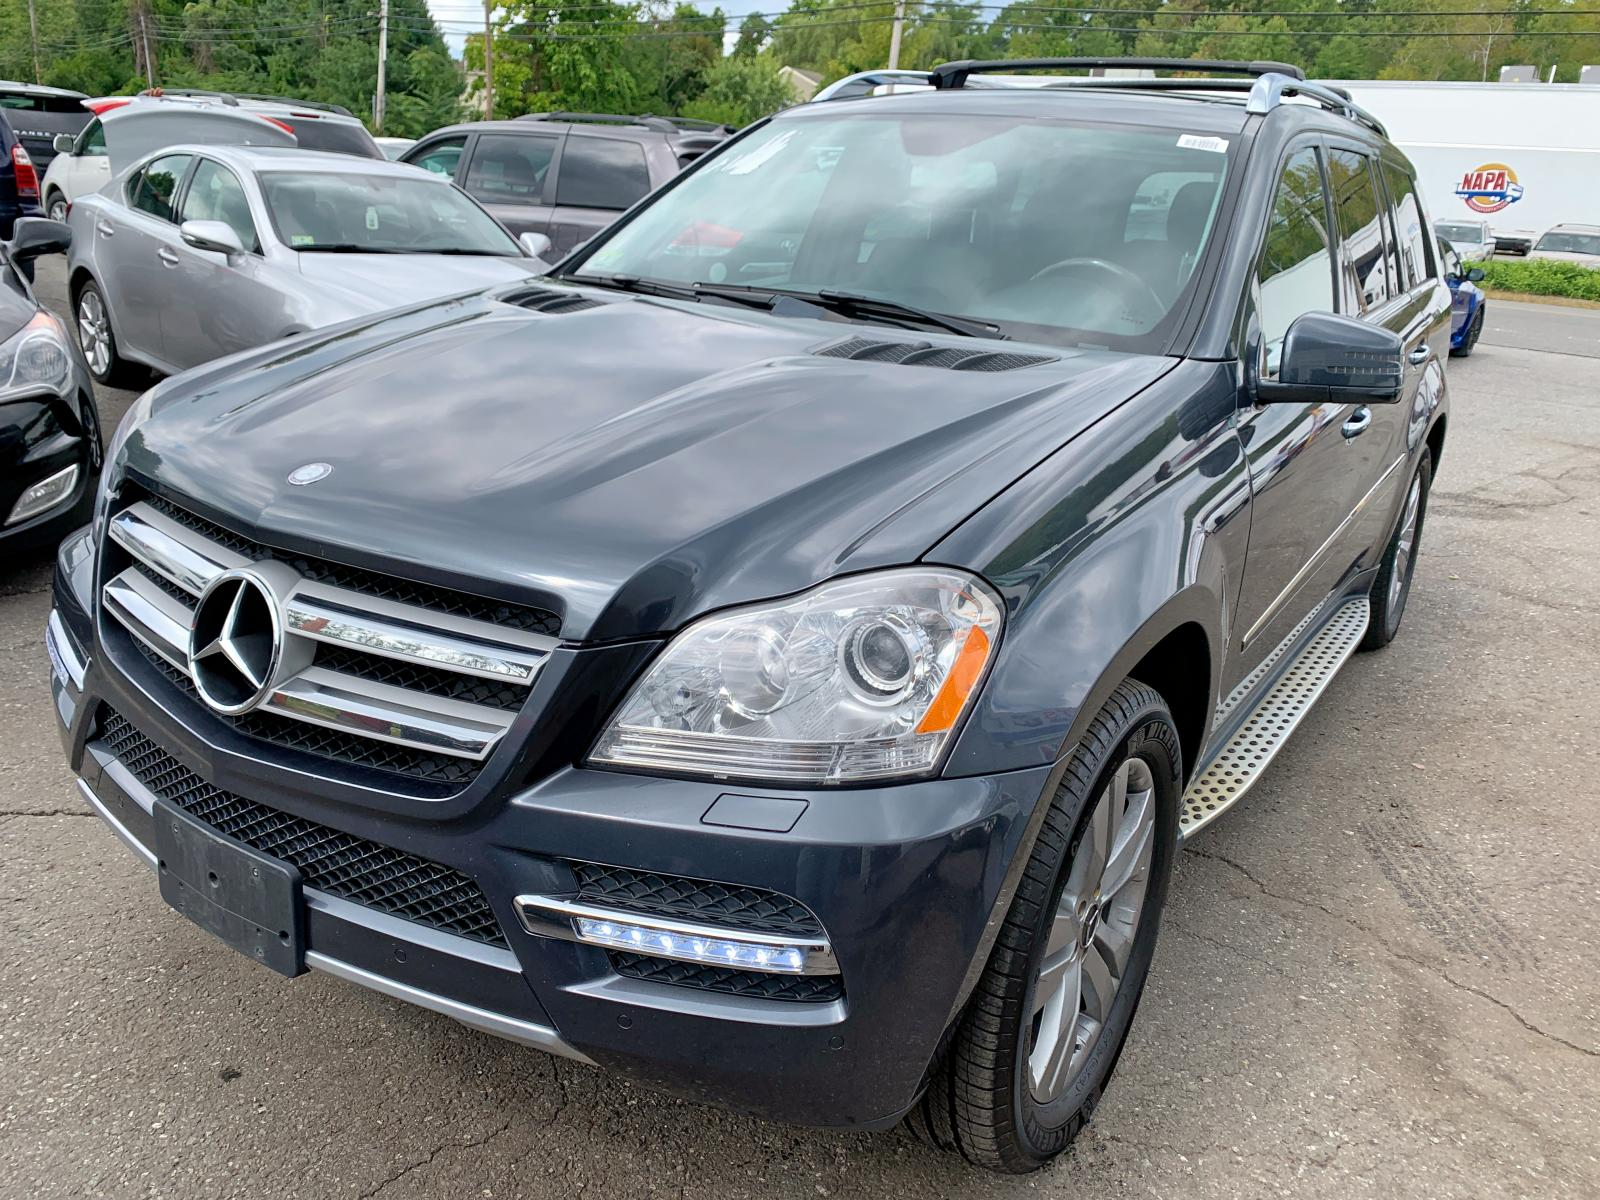 4JGBF7BE0BA624687 - 2011 Mercedes-Benz Gl 450 4Ma 4.6L Left View